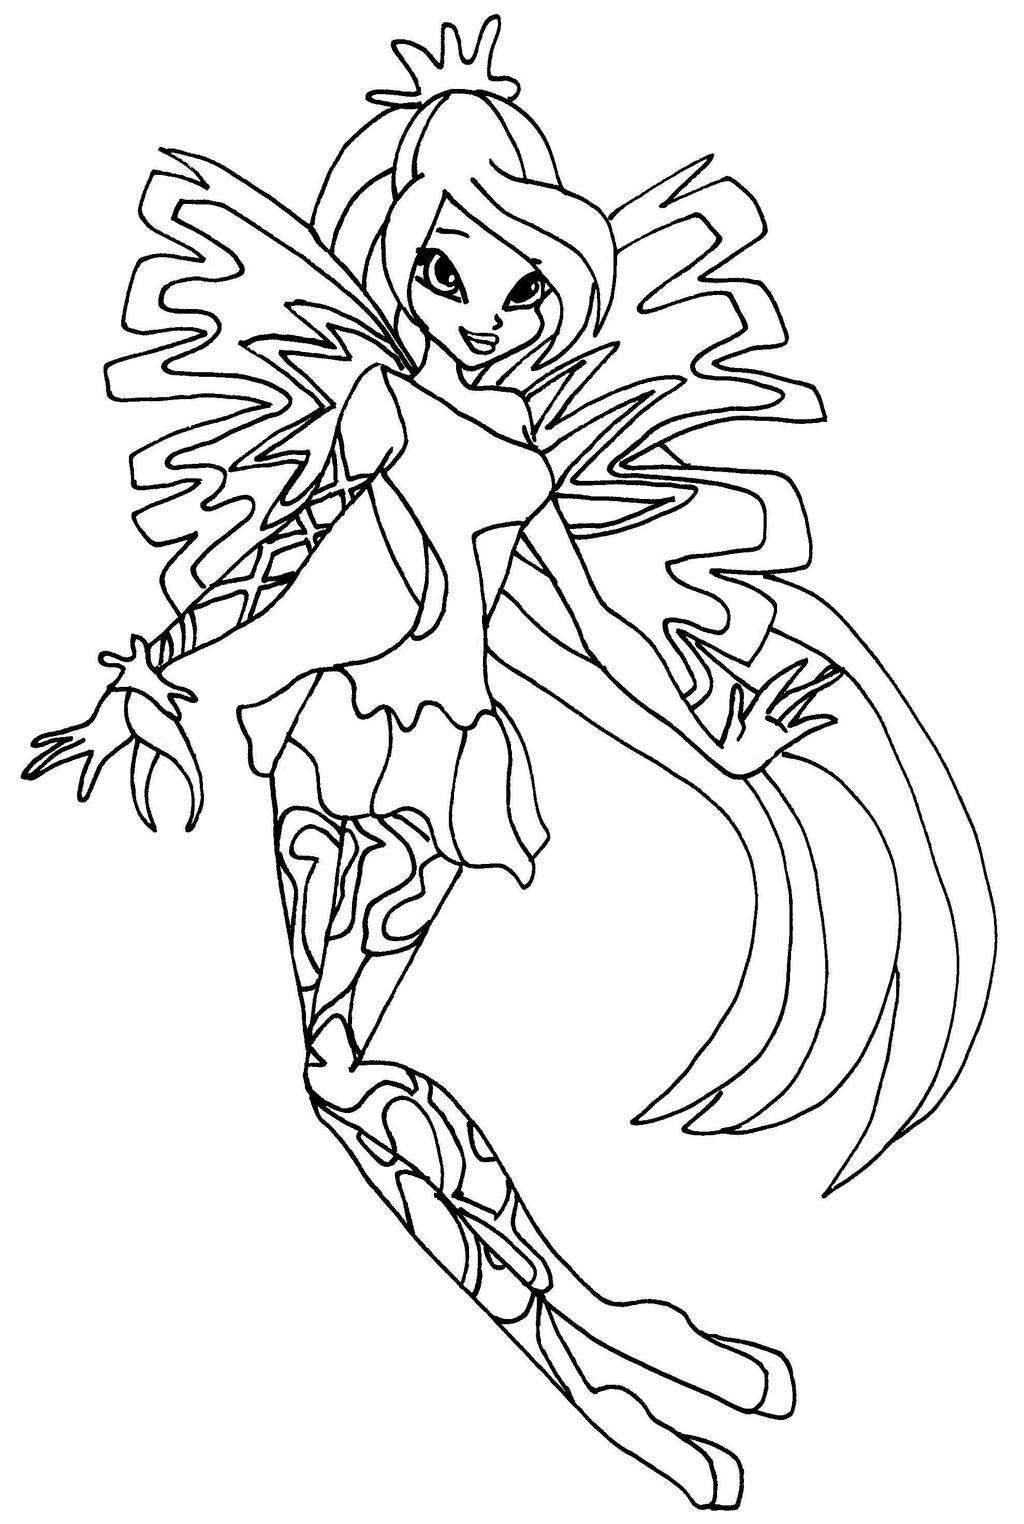 Sirenix bloom by elfkena on deviantart for Bloom winx coloring pages